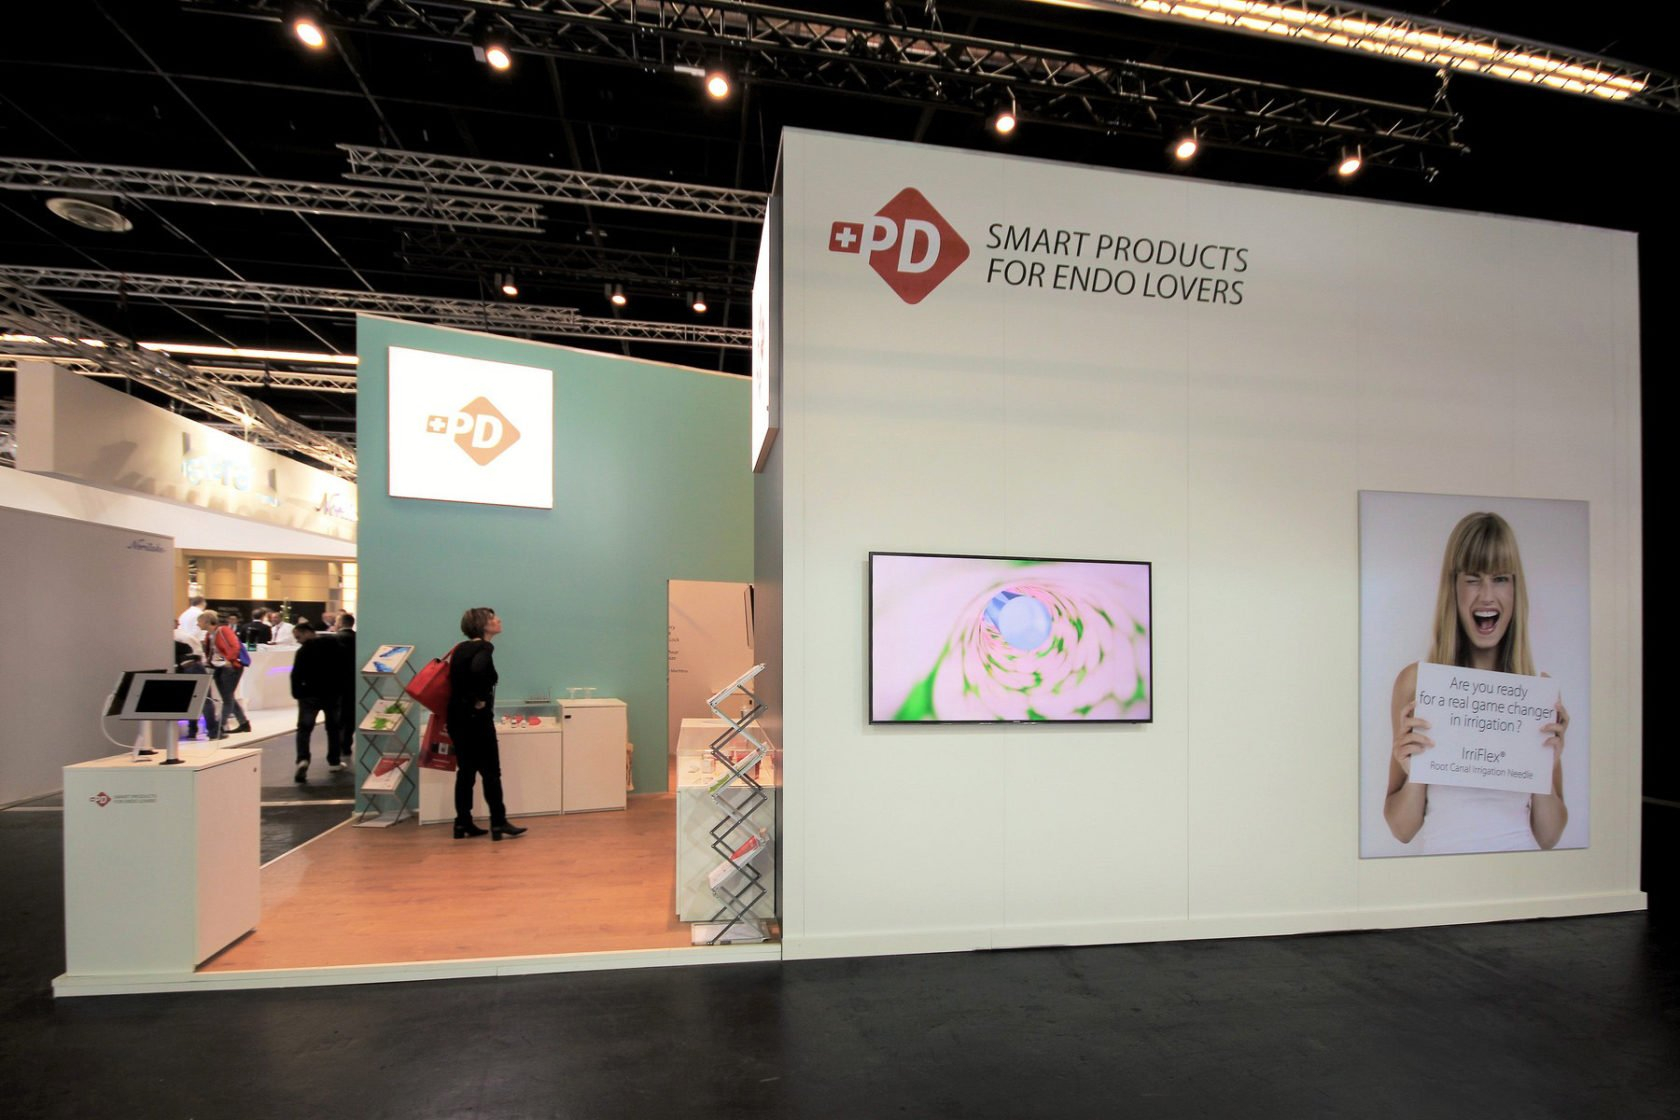 Produits Dentaires Sa Koeln Internationale Dental Show Cologne Messestand Messebau Messebauer 6